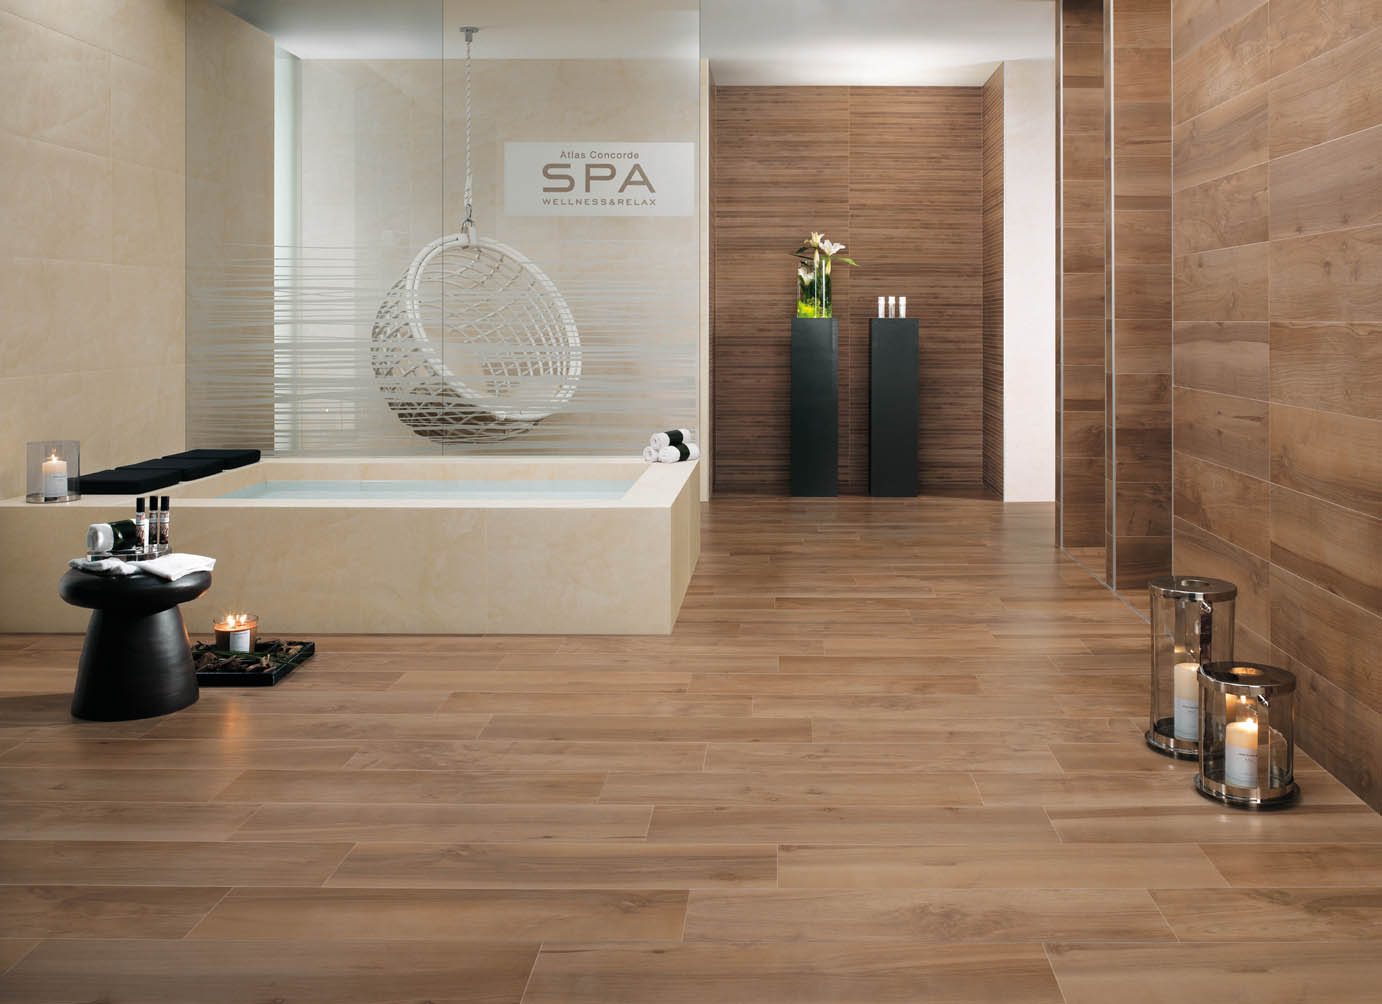 Carrelages int imitations parquets bois duc for Carrelage sol salle de bain imitation bois